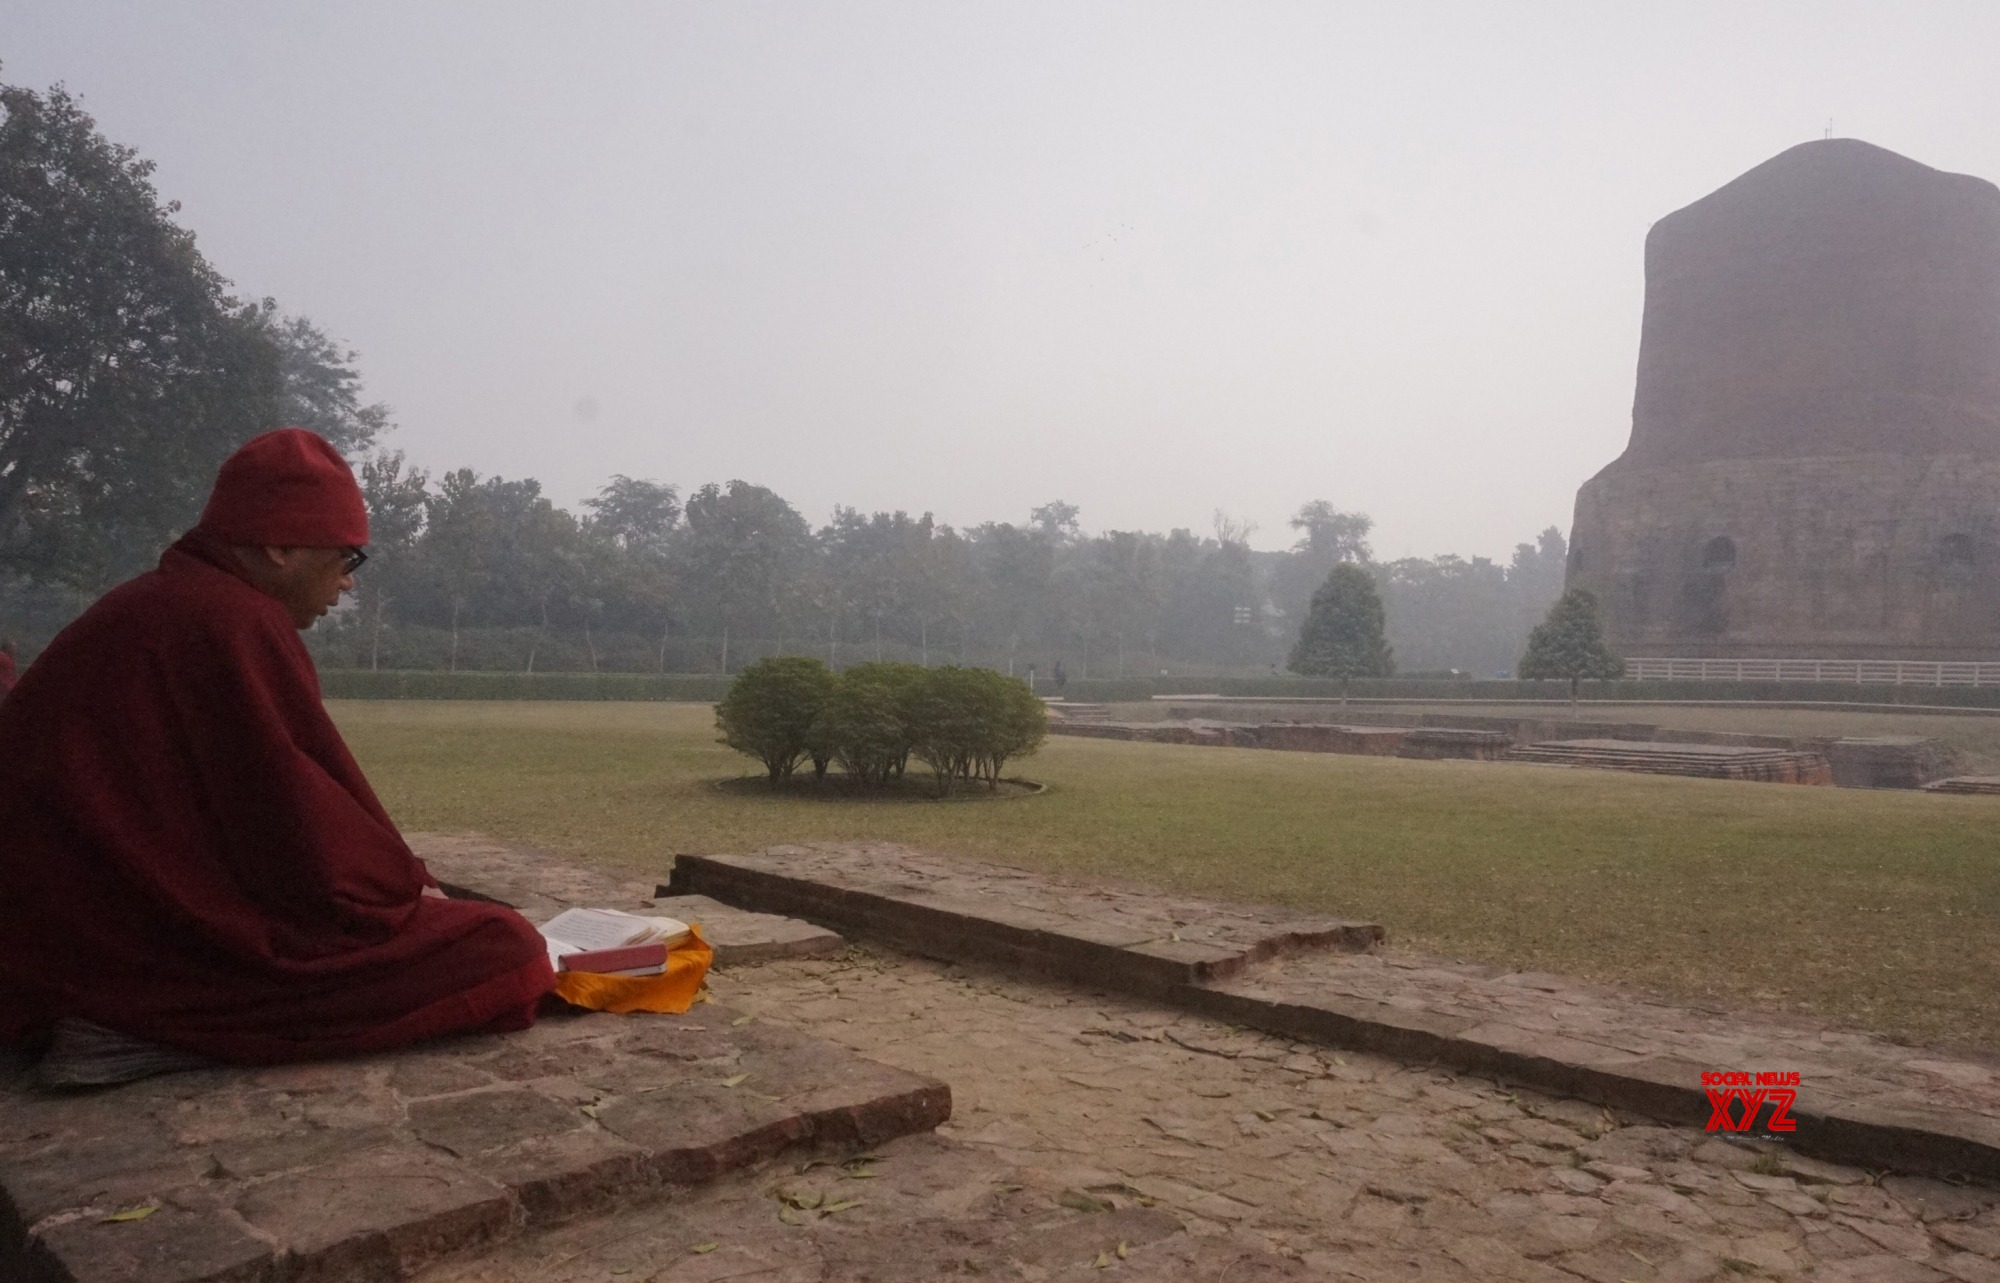 Sarnath to get more tourist facilities